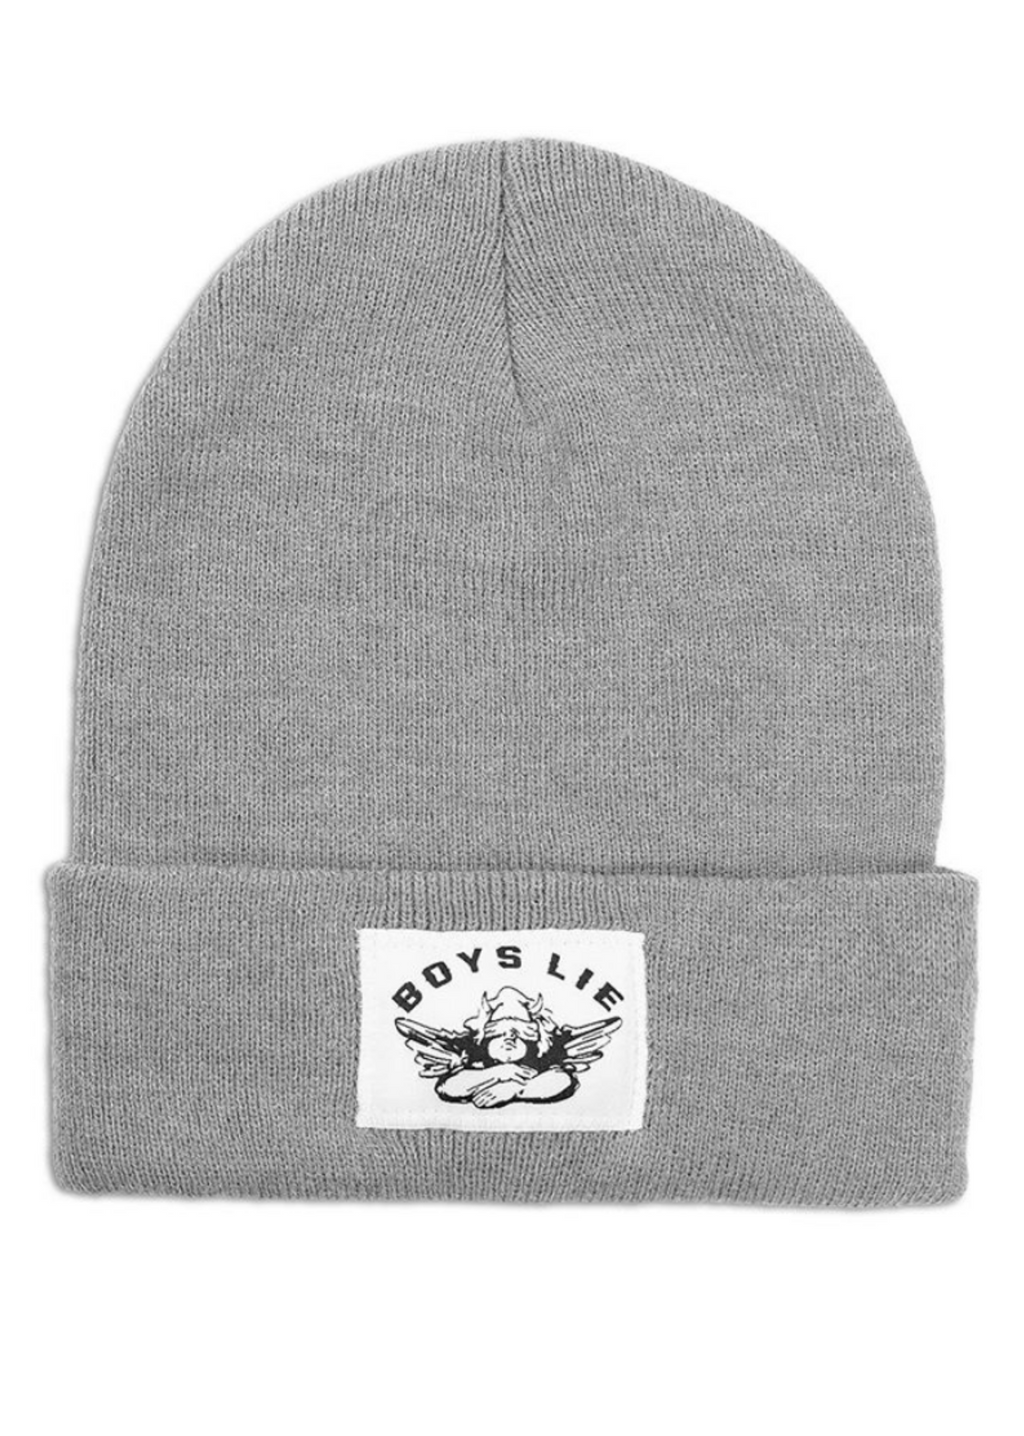 Boys Lie Beanie ★ Grey